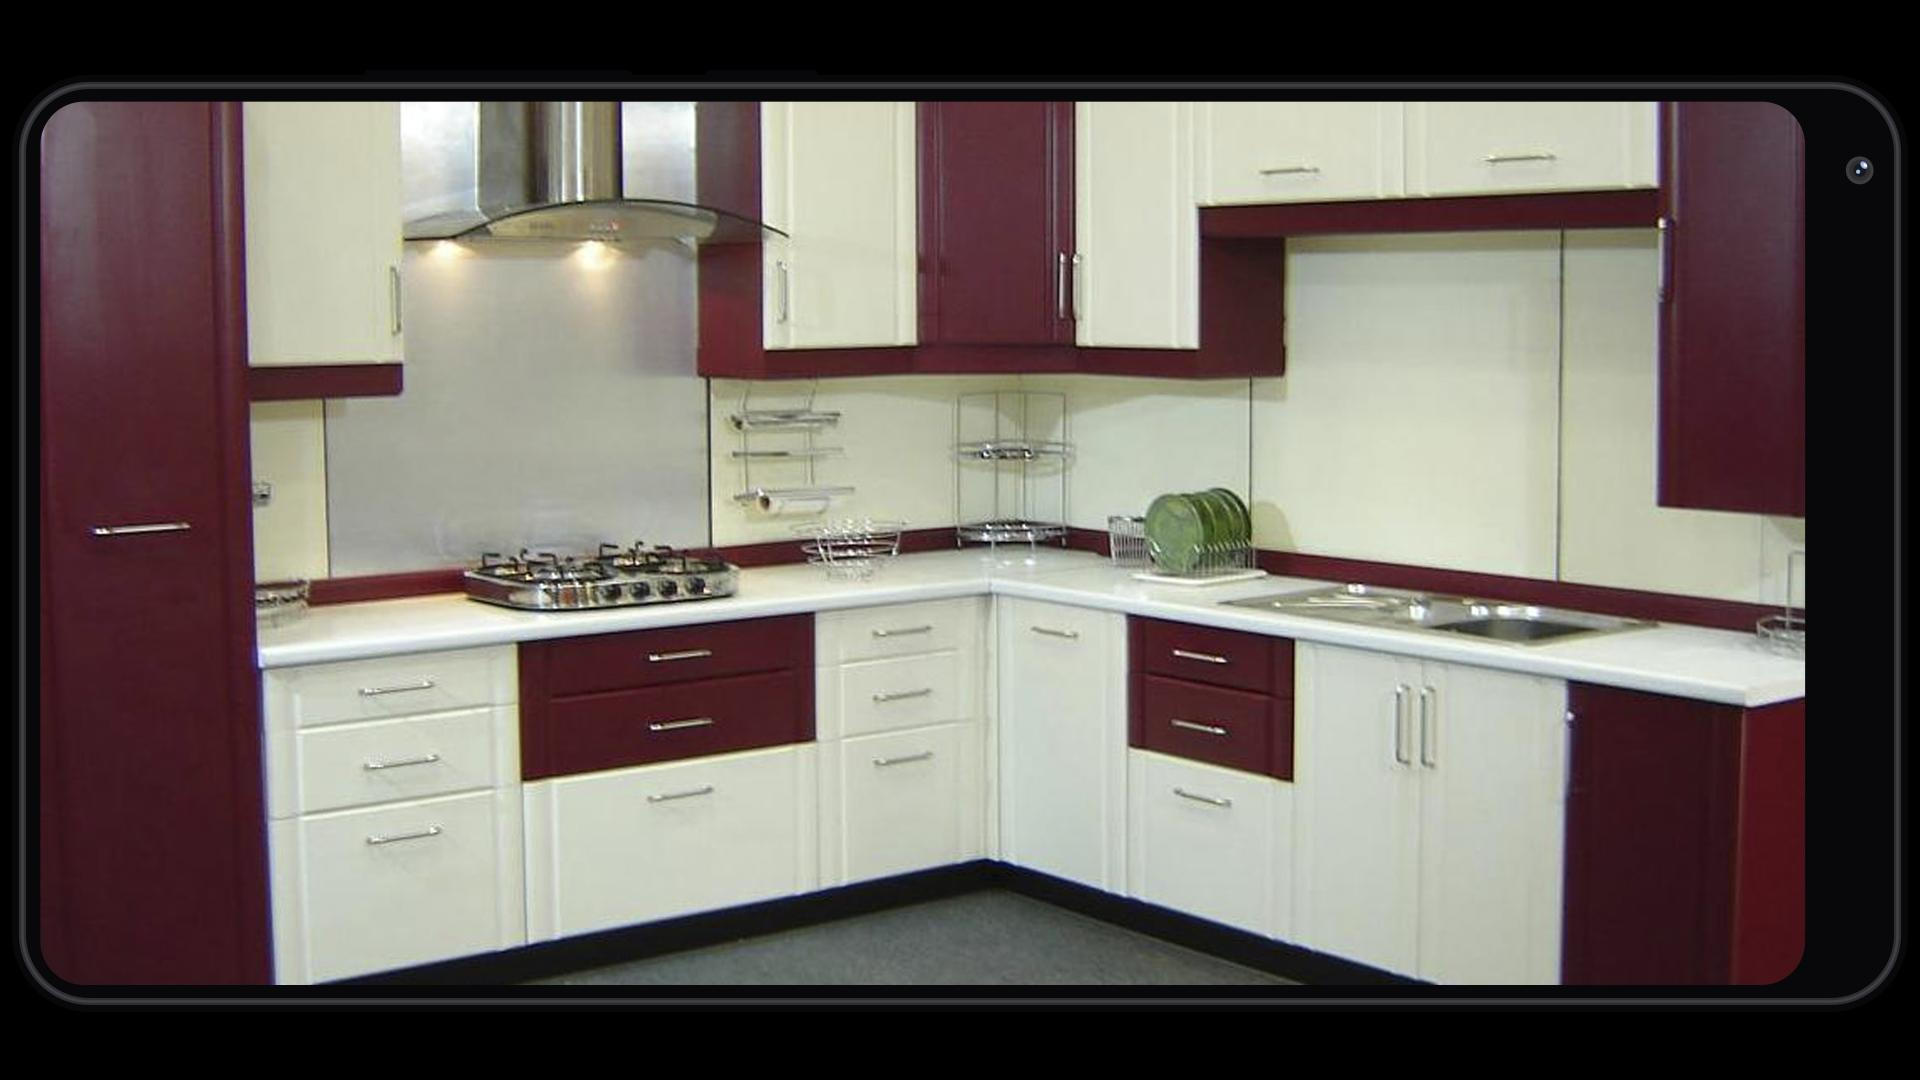 Latest Kitchens Designs 2019 for Android - APK Download